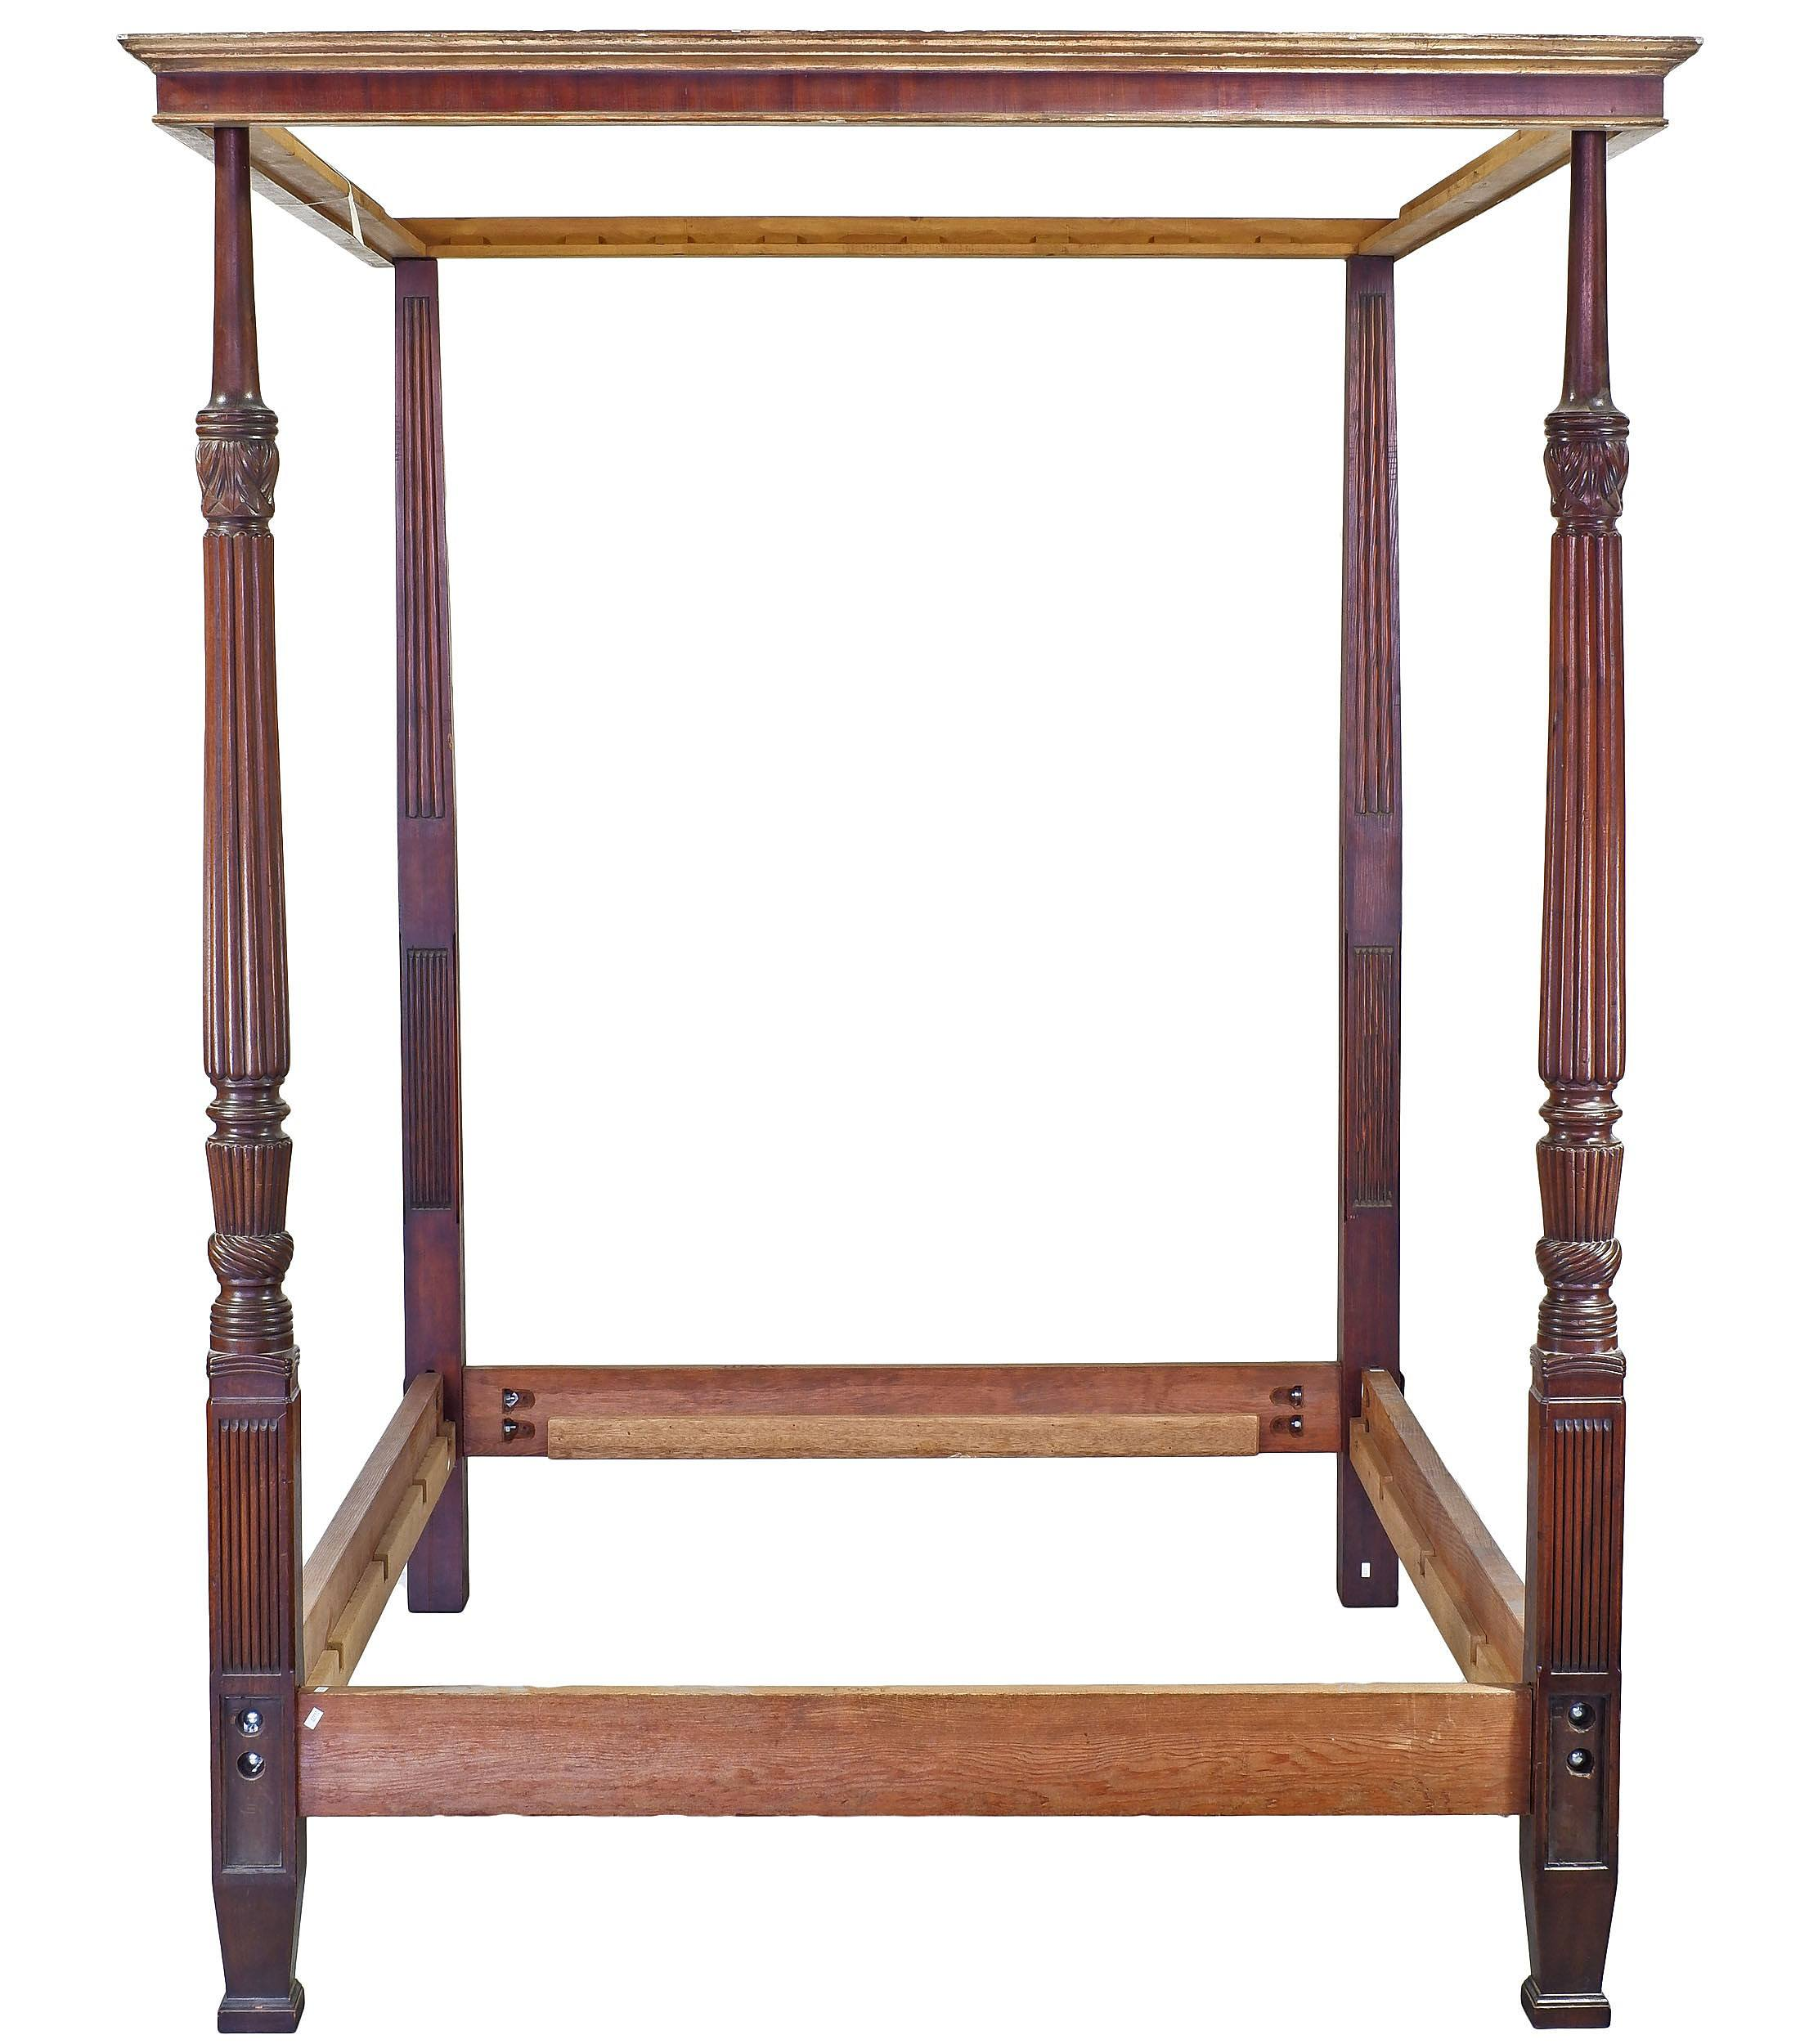 'Colonial Style Four Poster Bed'